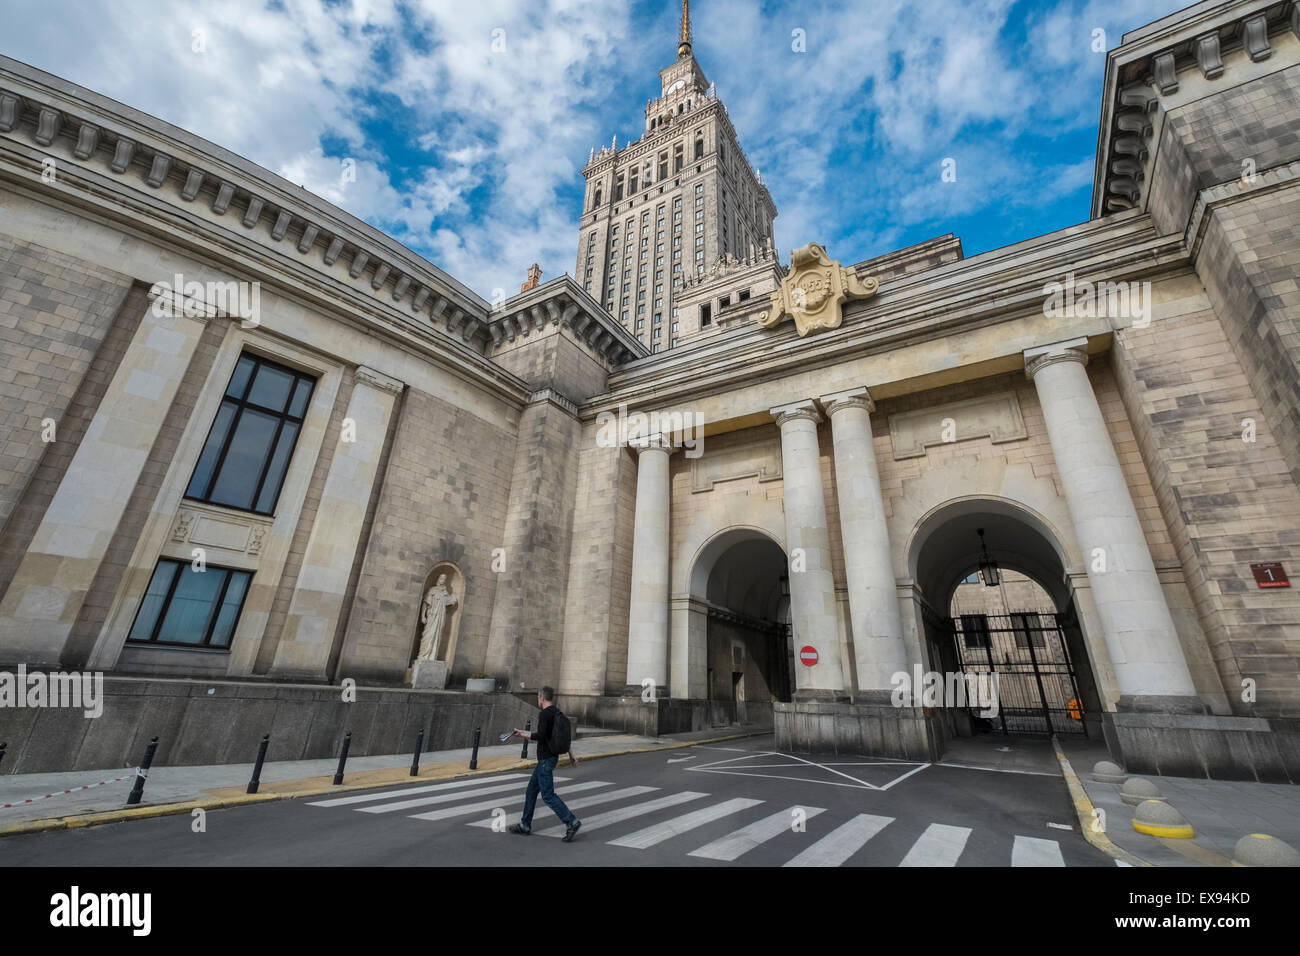 The Palace of Culture and Science building, a mix of Stalinist architecture and Polish historicism, Warsaw, Poland Stock Photo